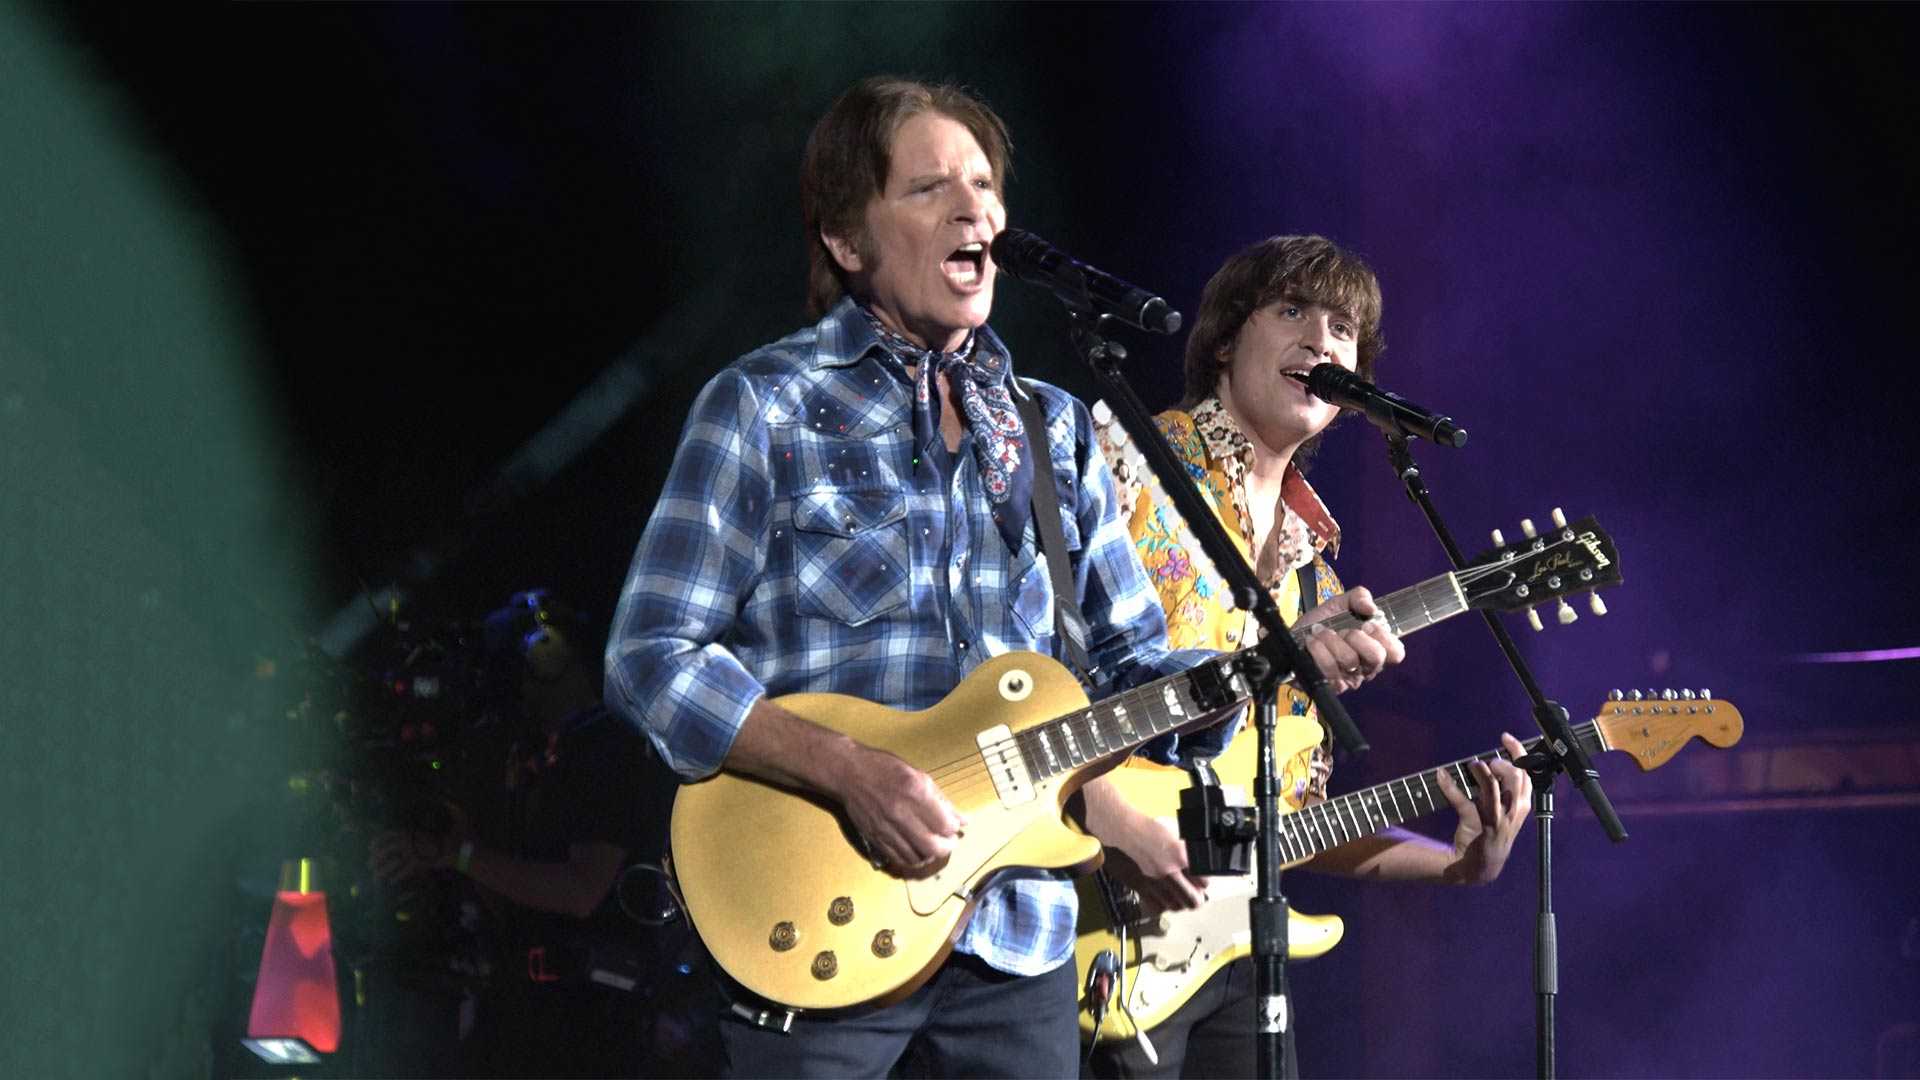 John Fogerty performing with his son Shane in JOHN FOGERTY: MY 50 YEAR TRIP, inspired by the 50th anniversary of Woodstock and John's hit parade with Creedence Clearwater Revival